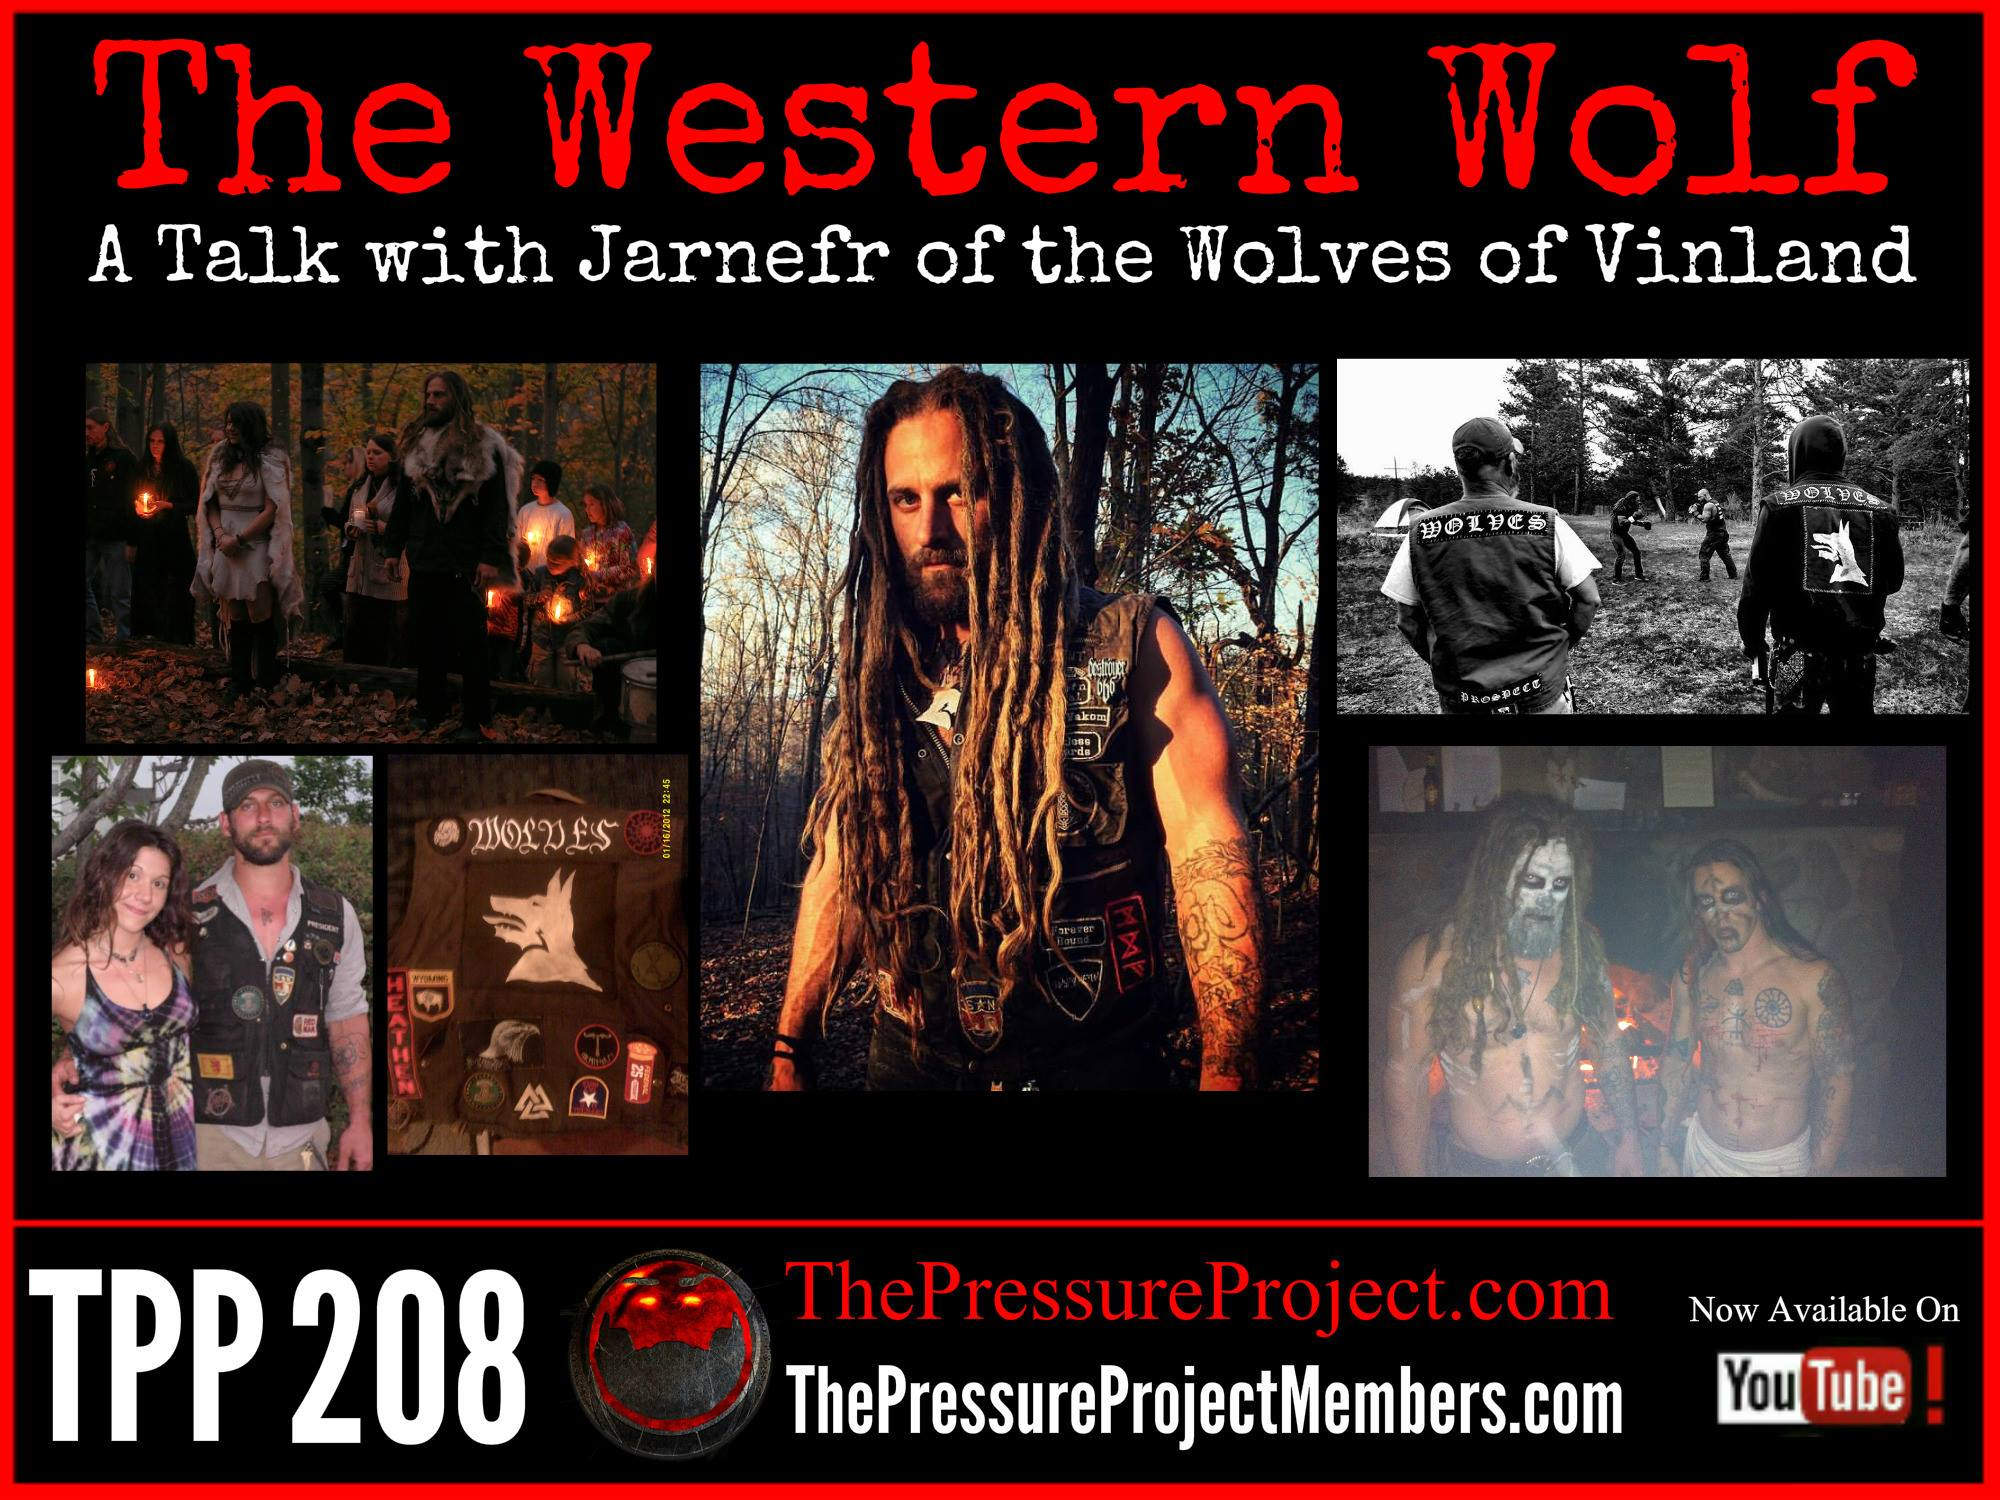 THE WESTERN WOLF